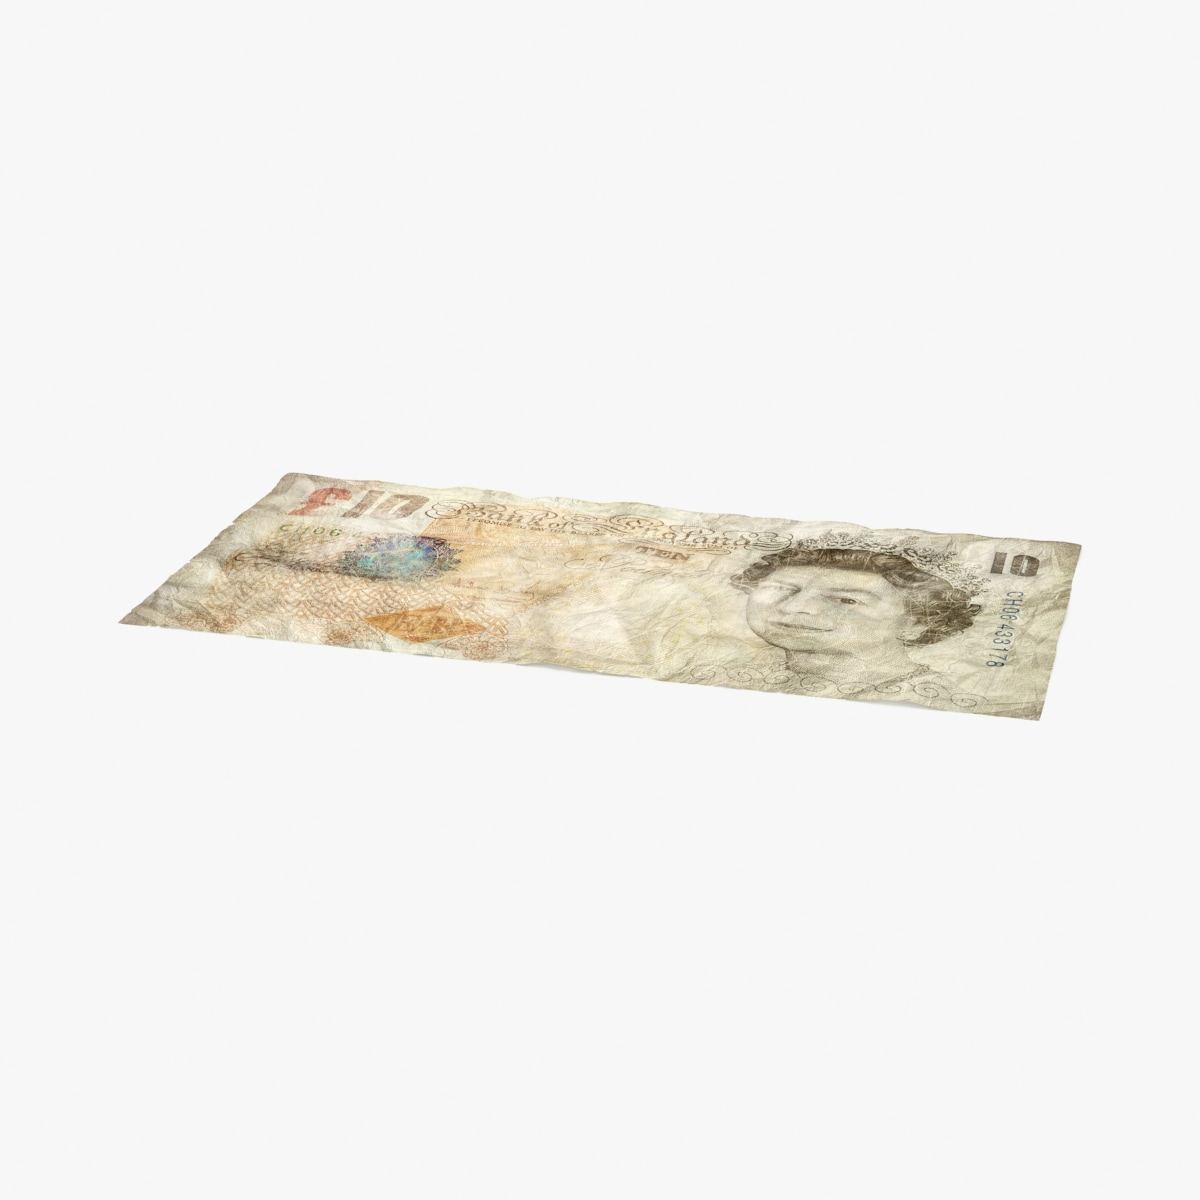 10-pound-note-distressed---single model